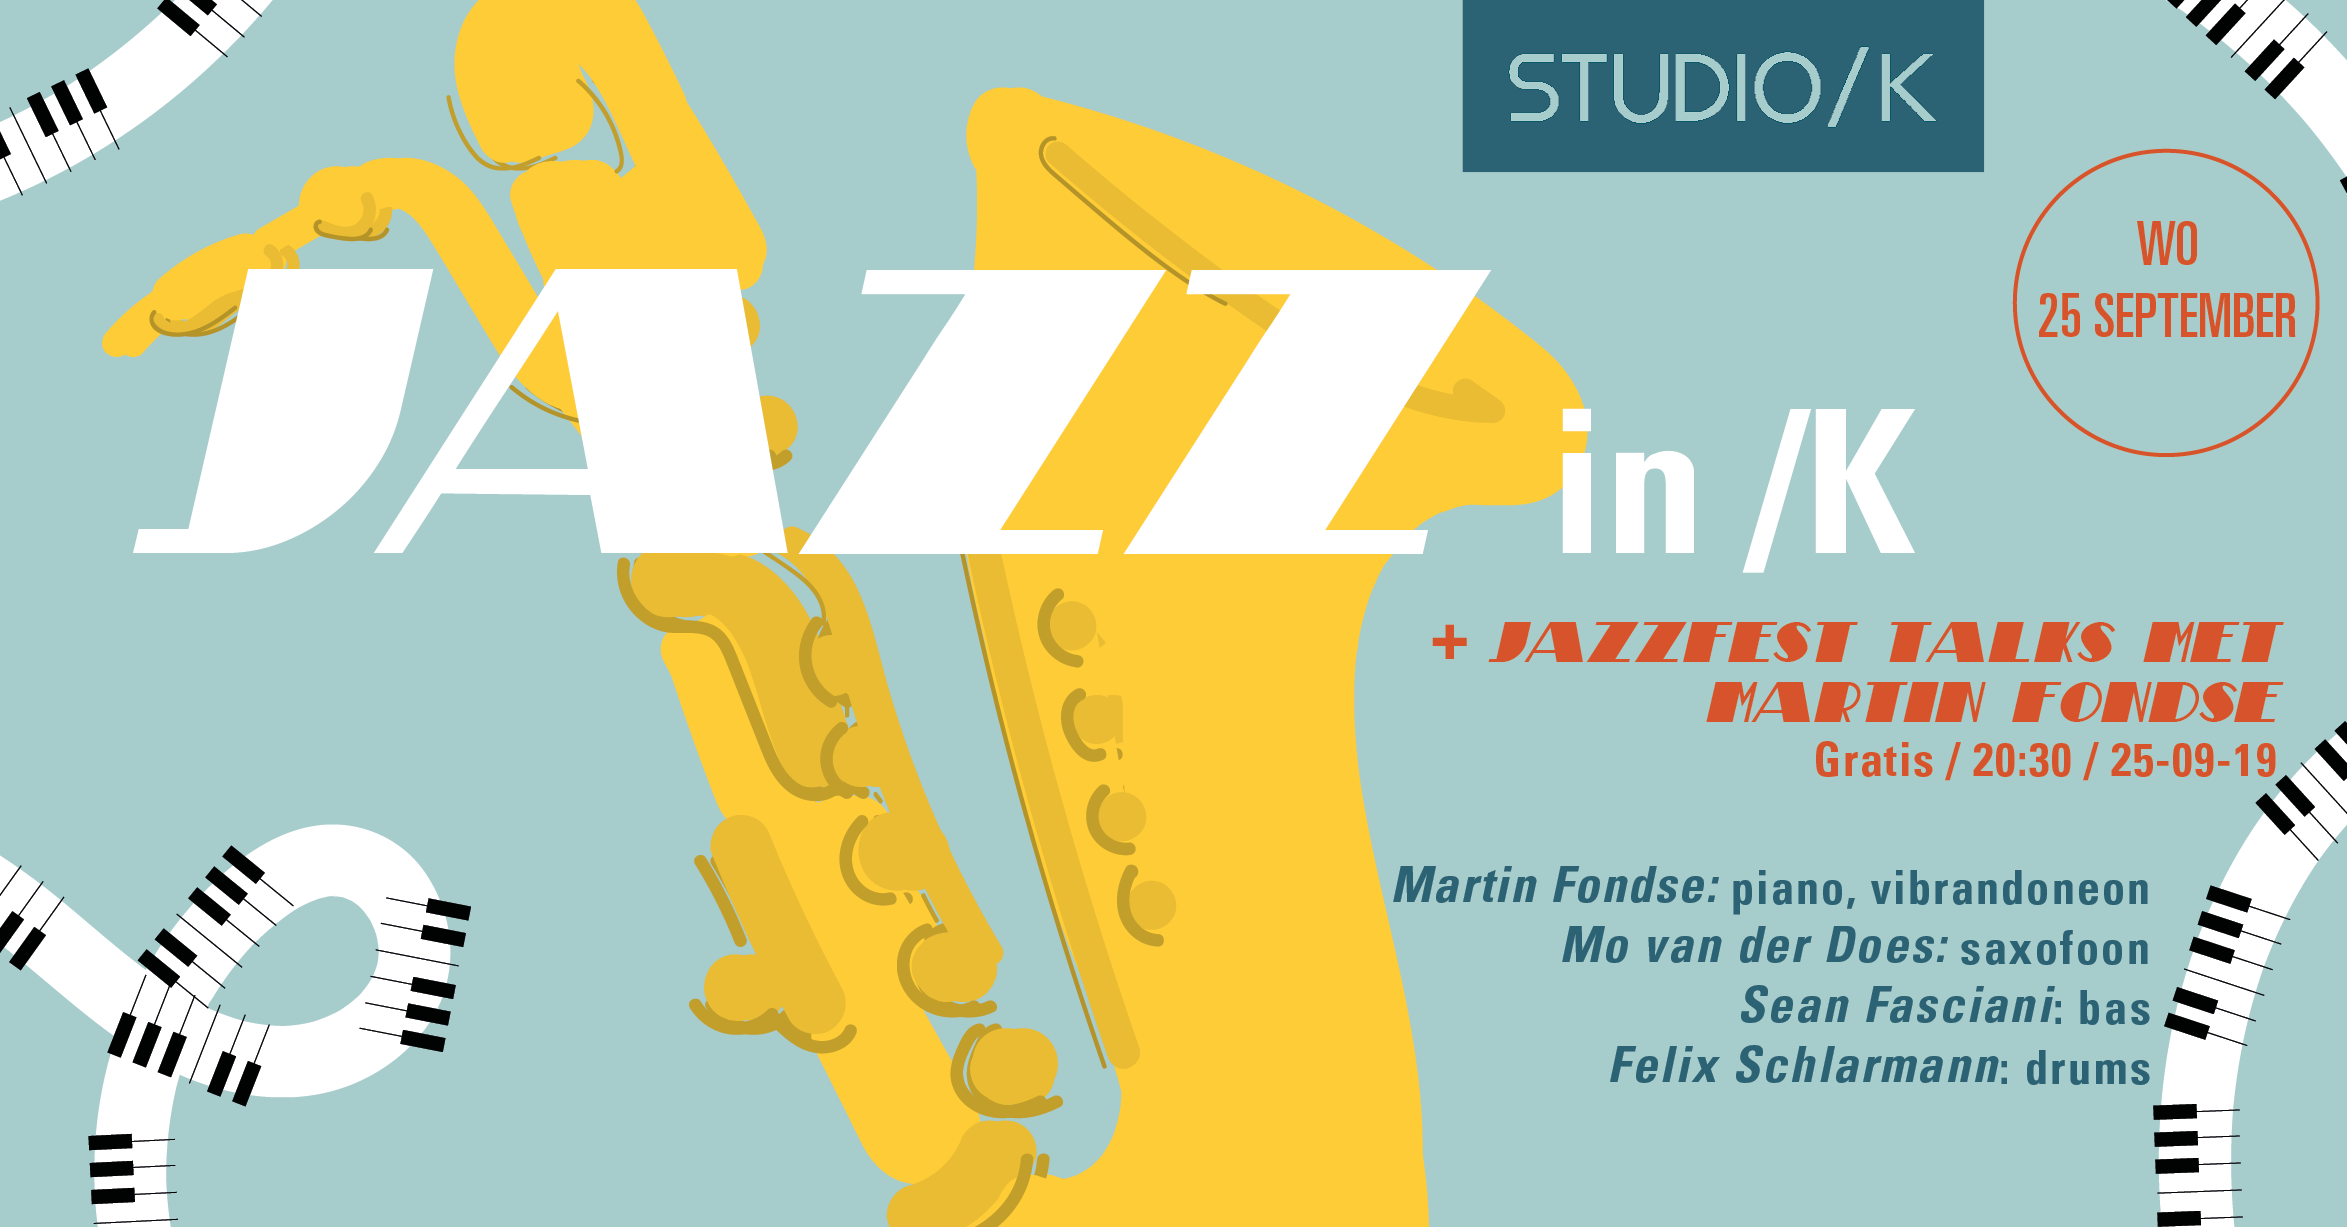 Jazz in /K + JazzFest Talks met Martin Fondse